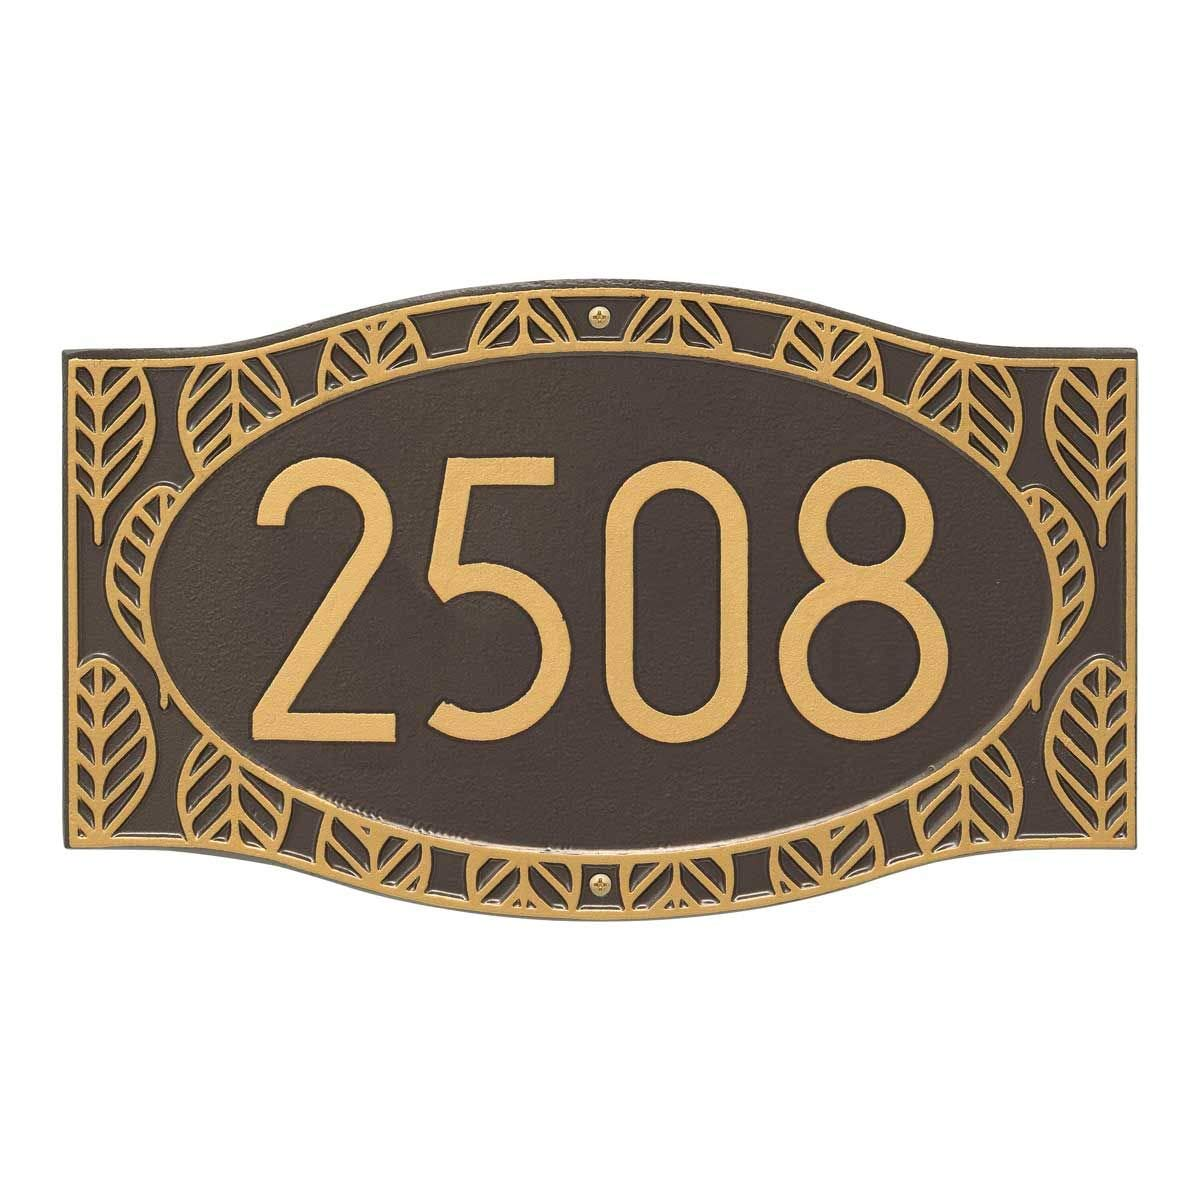 Comfort House Metal Address Plaque - Decorative Leaf Border House Number Sign - Choose Your Color P3095